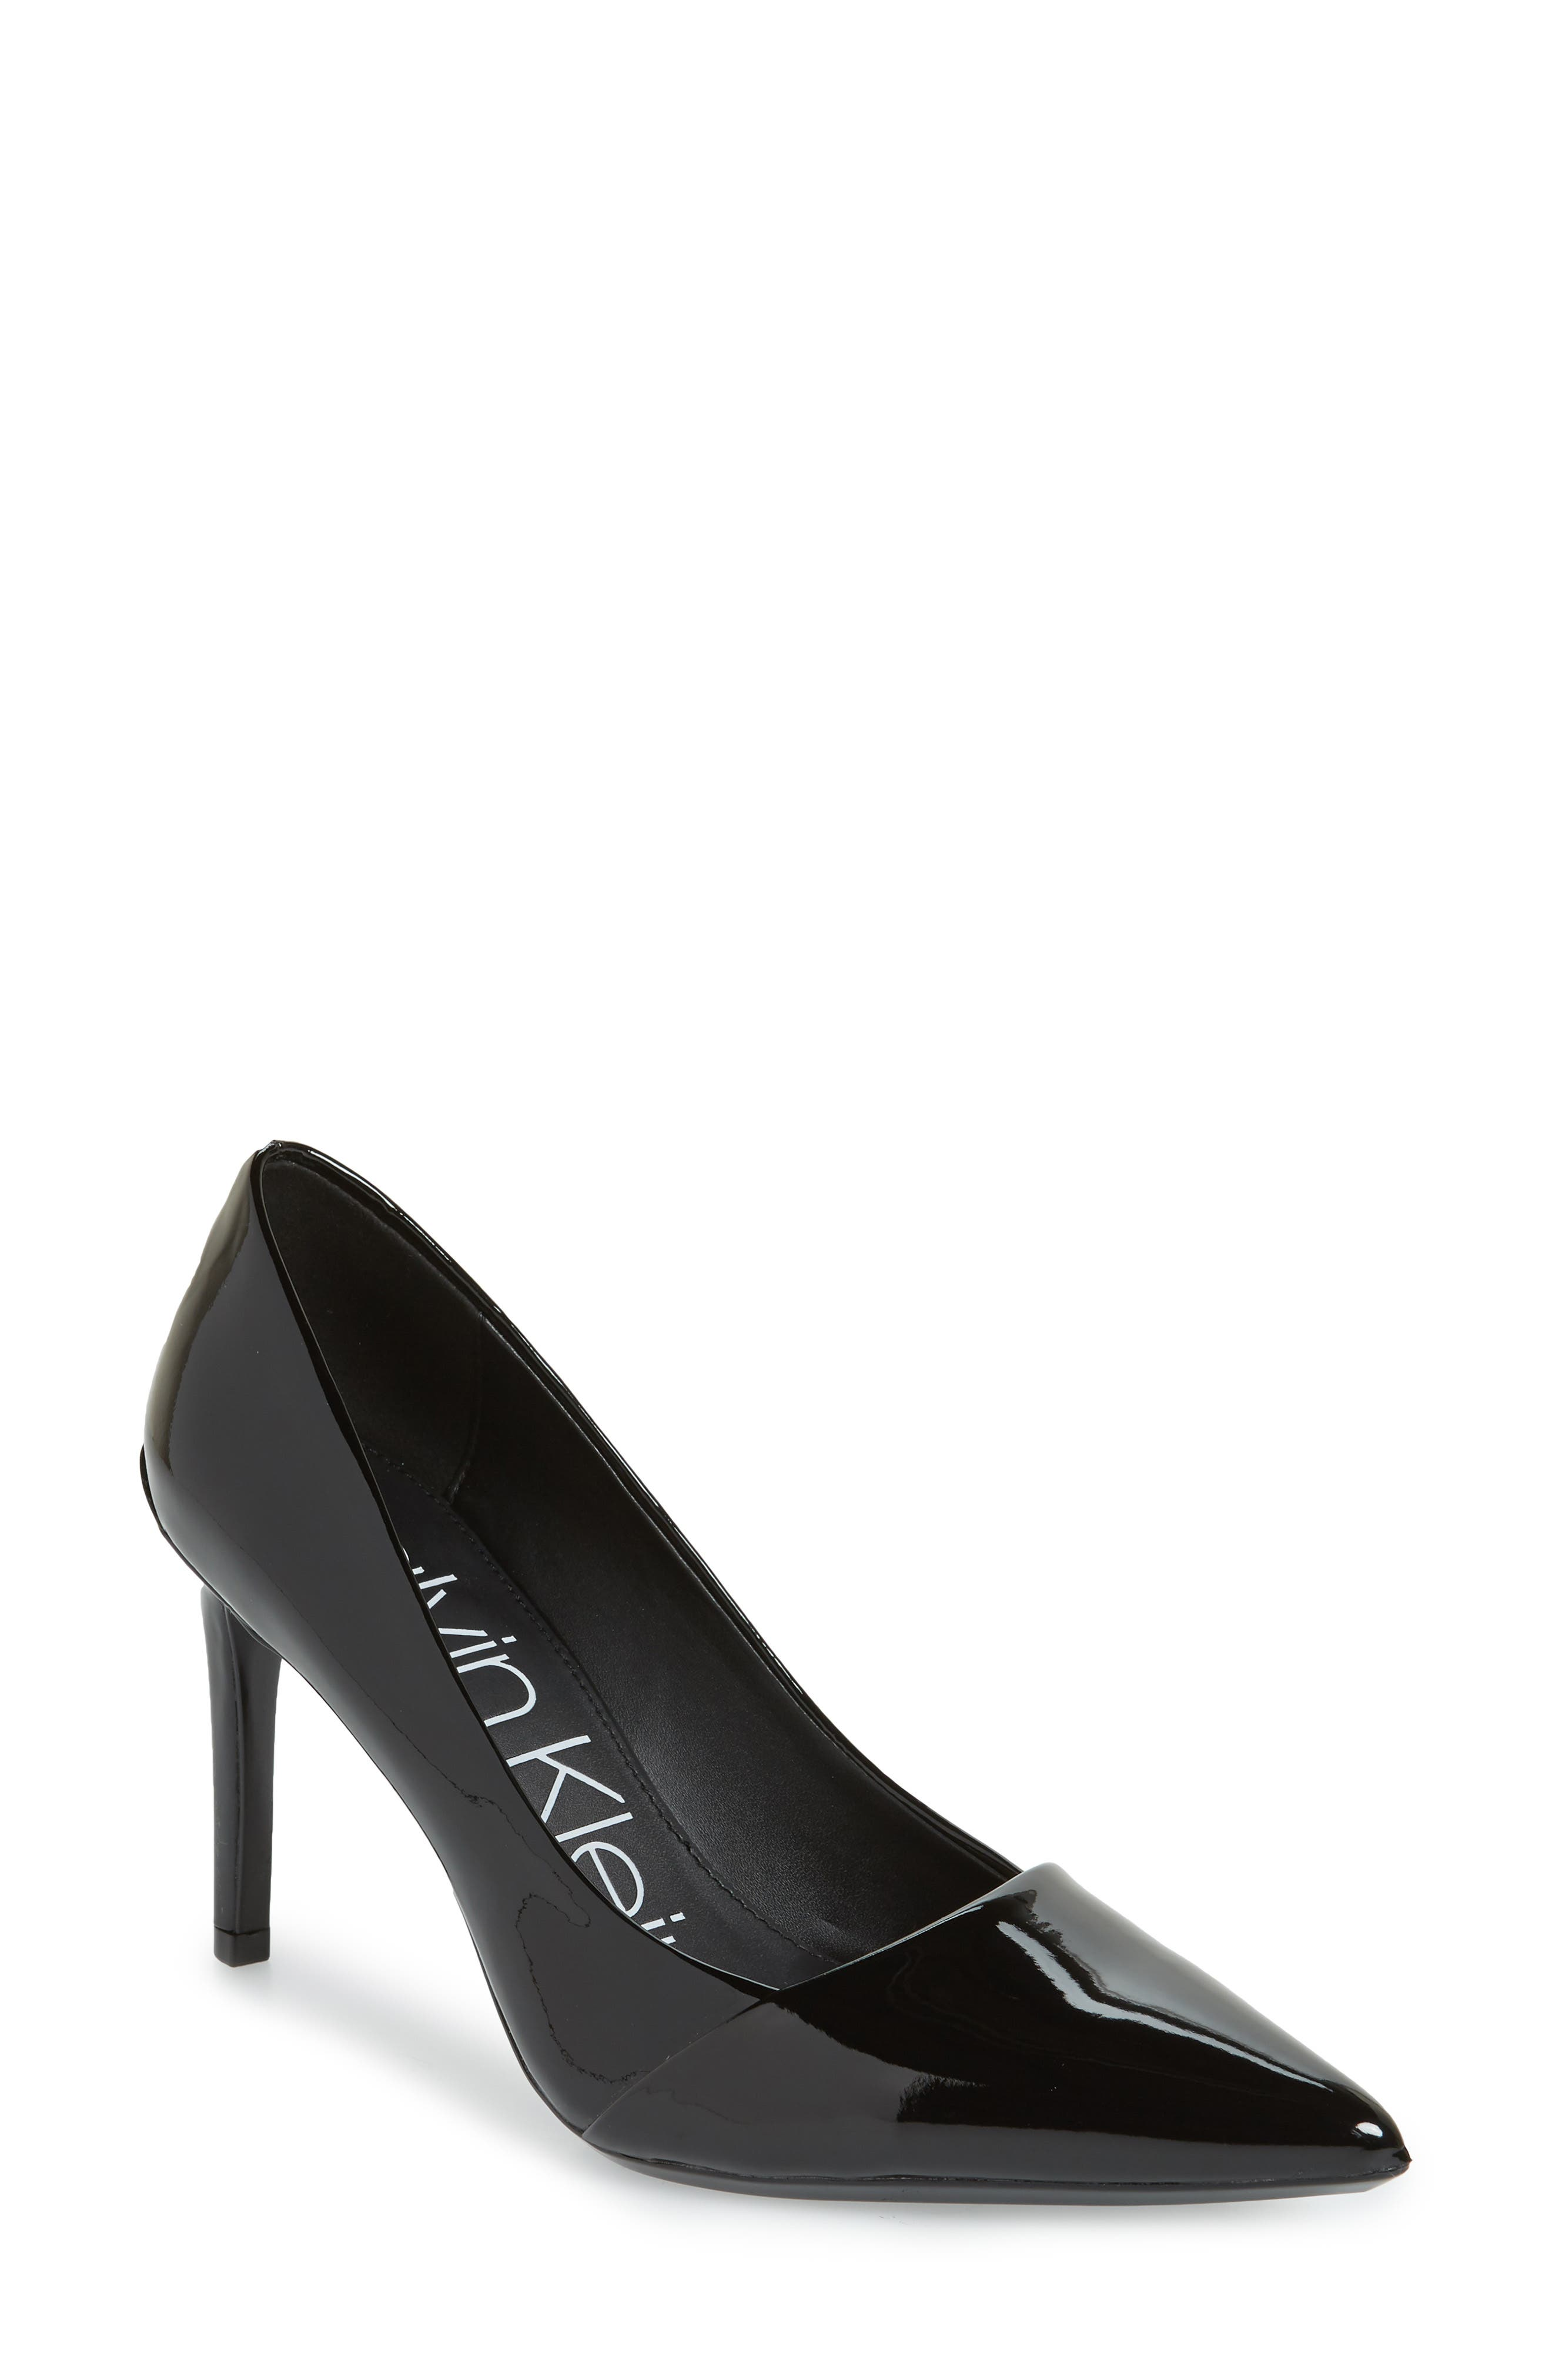 CALVIN KLEIN, Roslyn Pointed Toe Pump, Main thumbnail 1, color, BLACK PATENT LEATHER